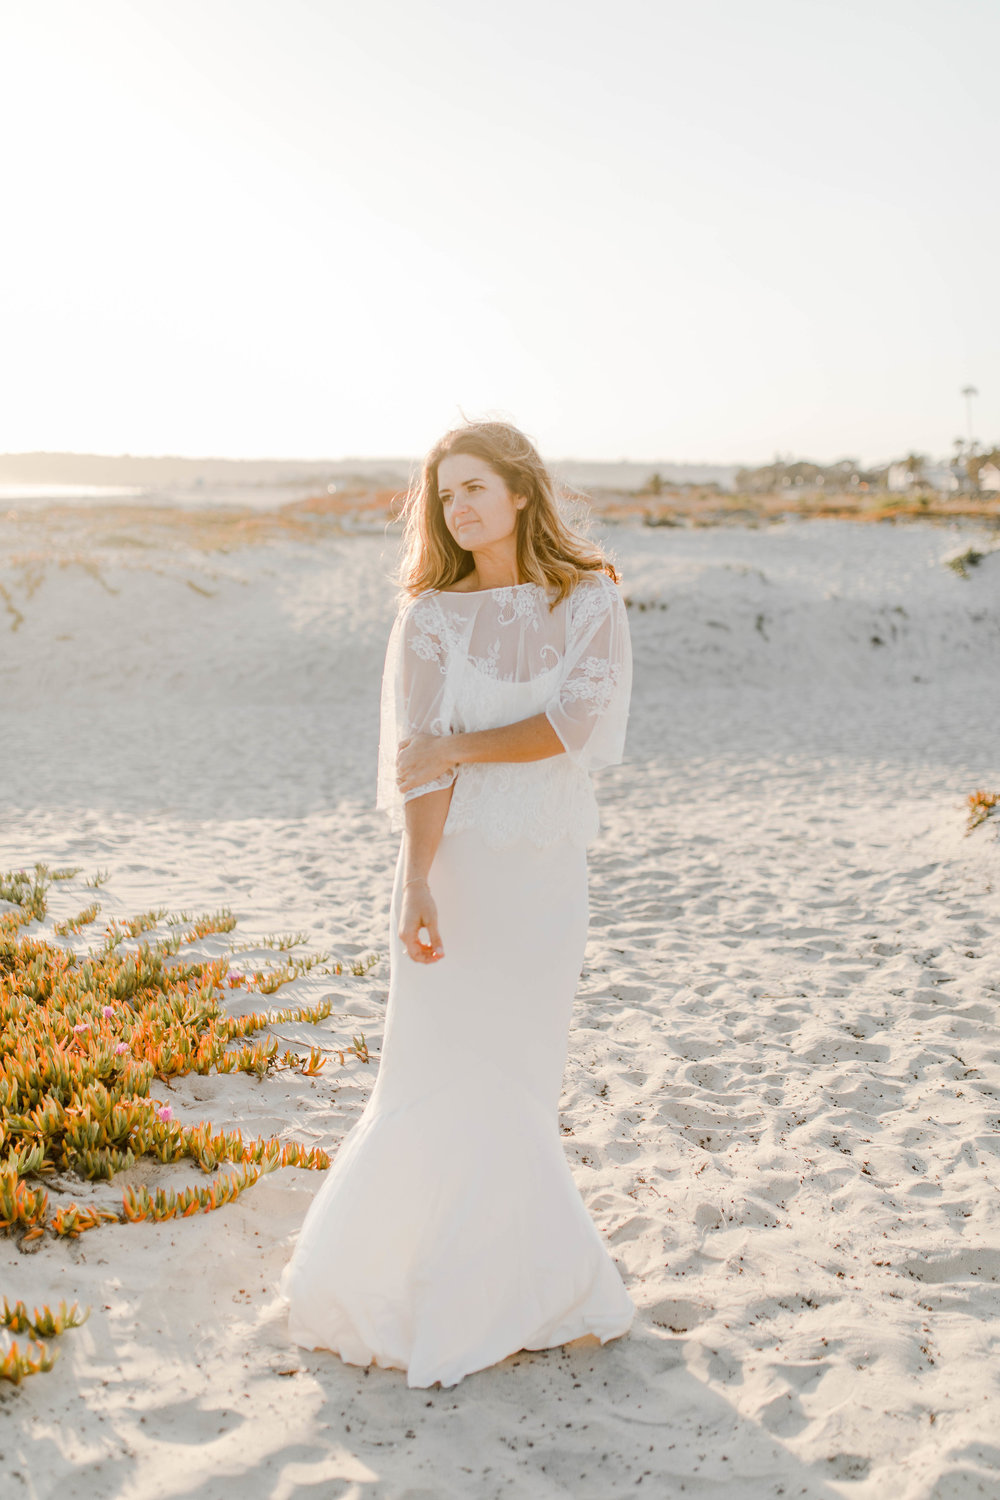 SanDiegoWeddingPhotographer_Bree+Stephen-235.jpg